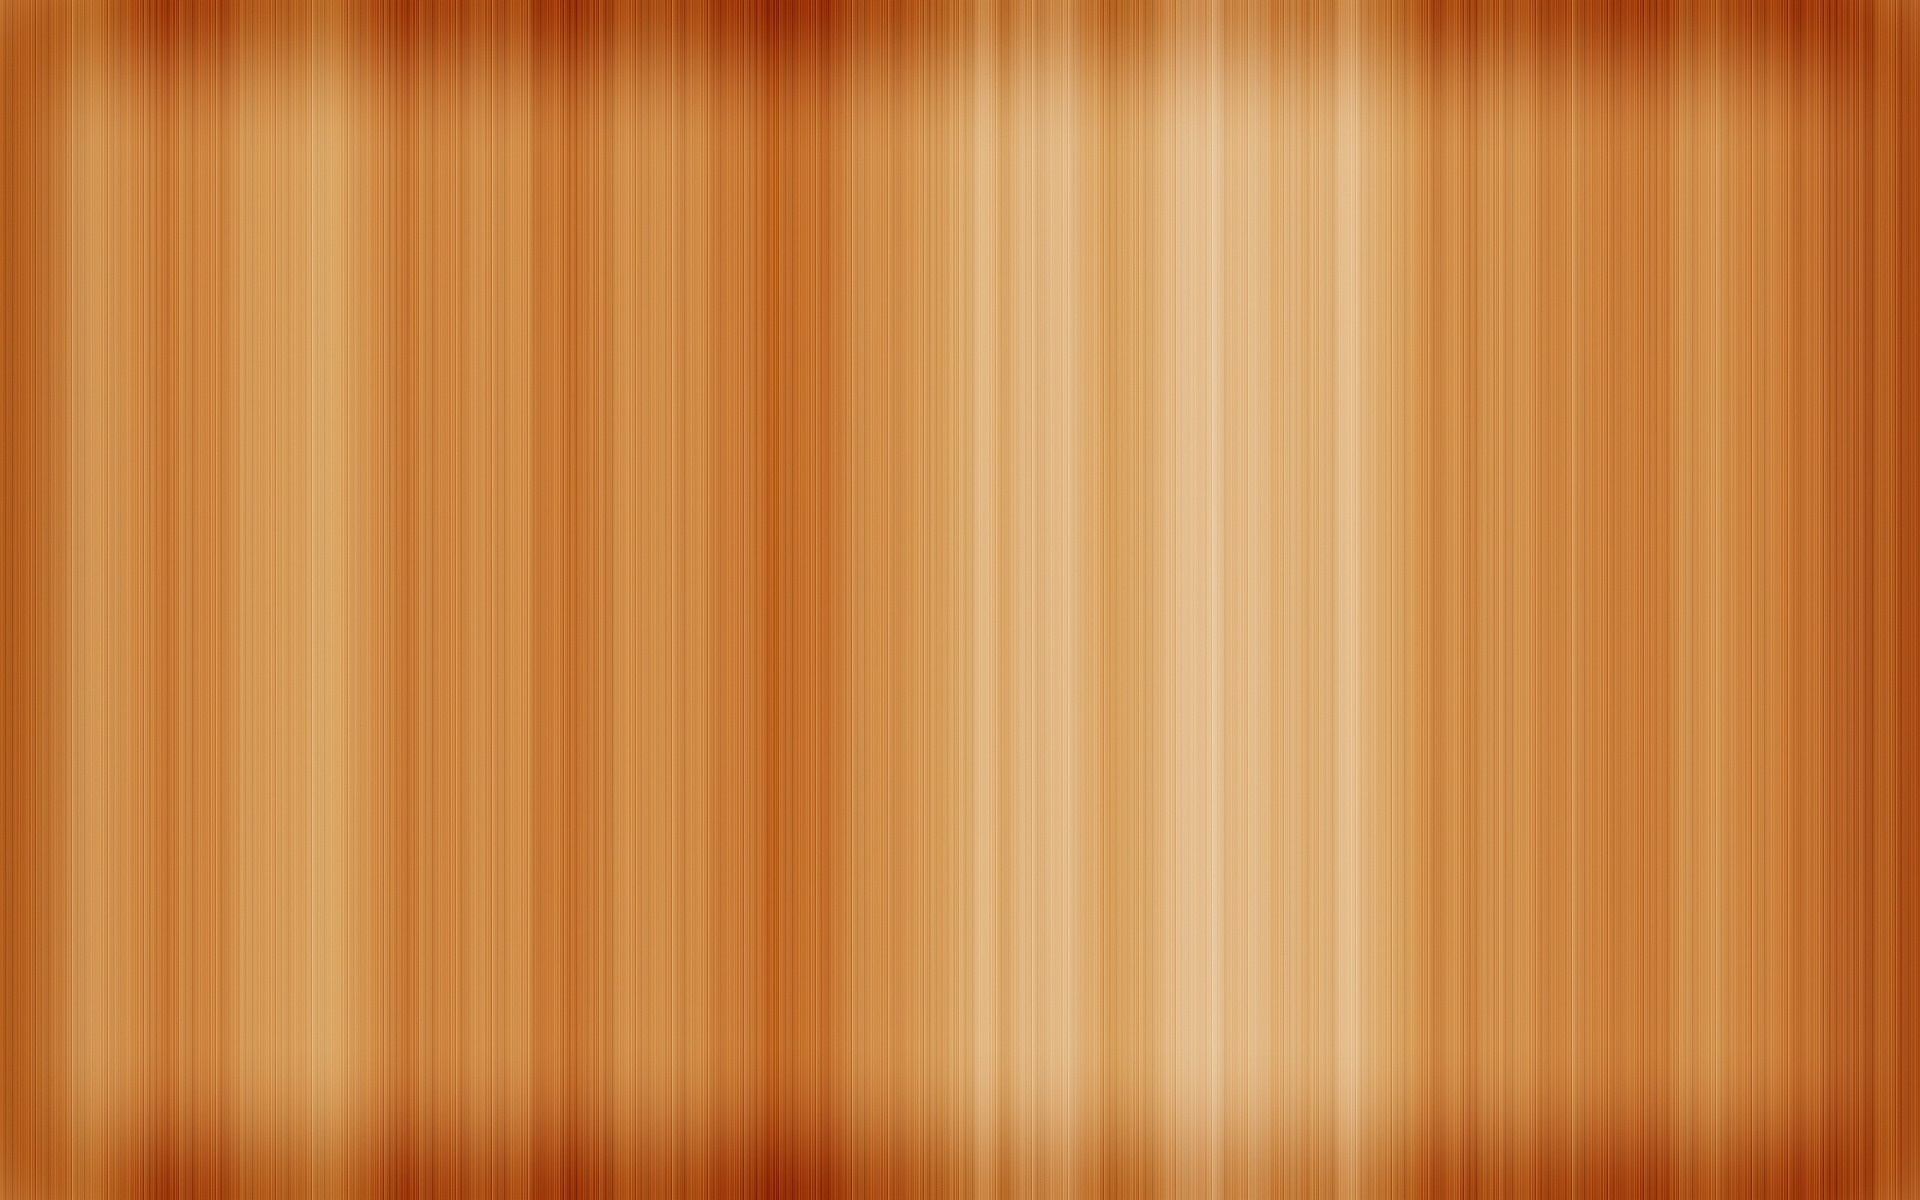 Wood Hd Wallpaper Background Image 1920x1200 Id